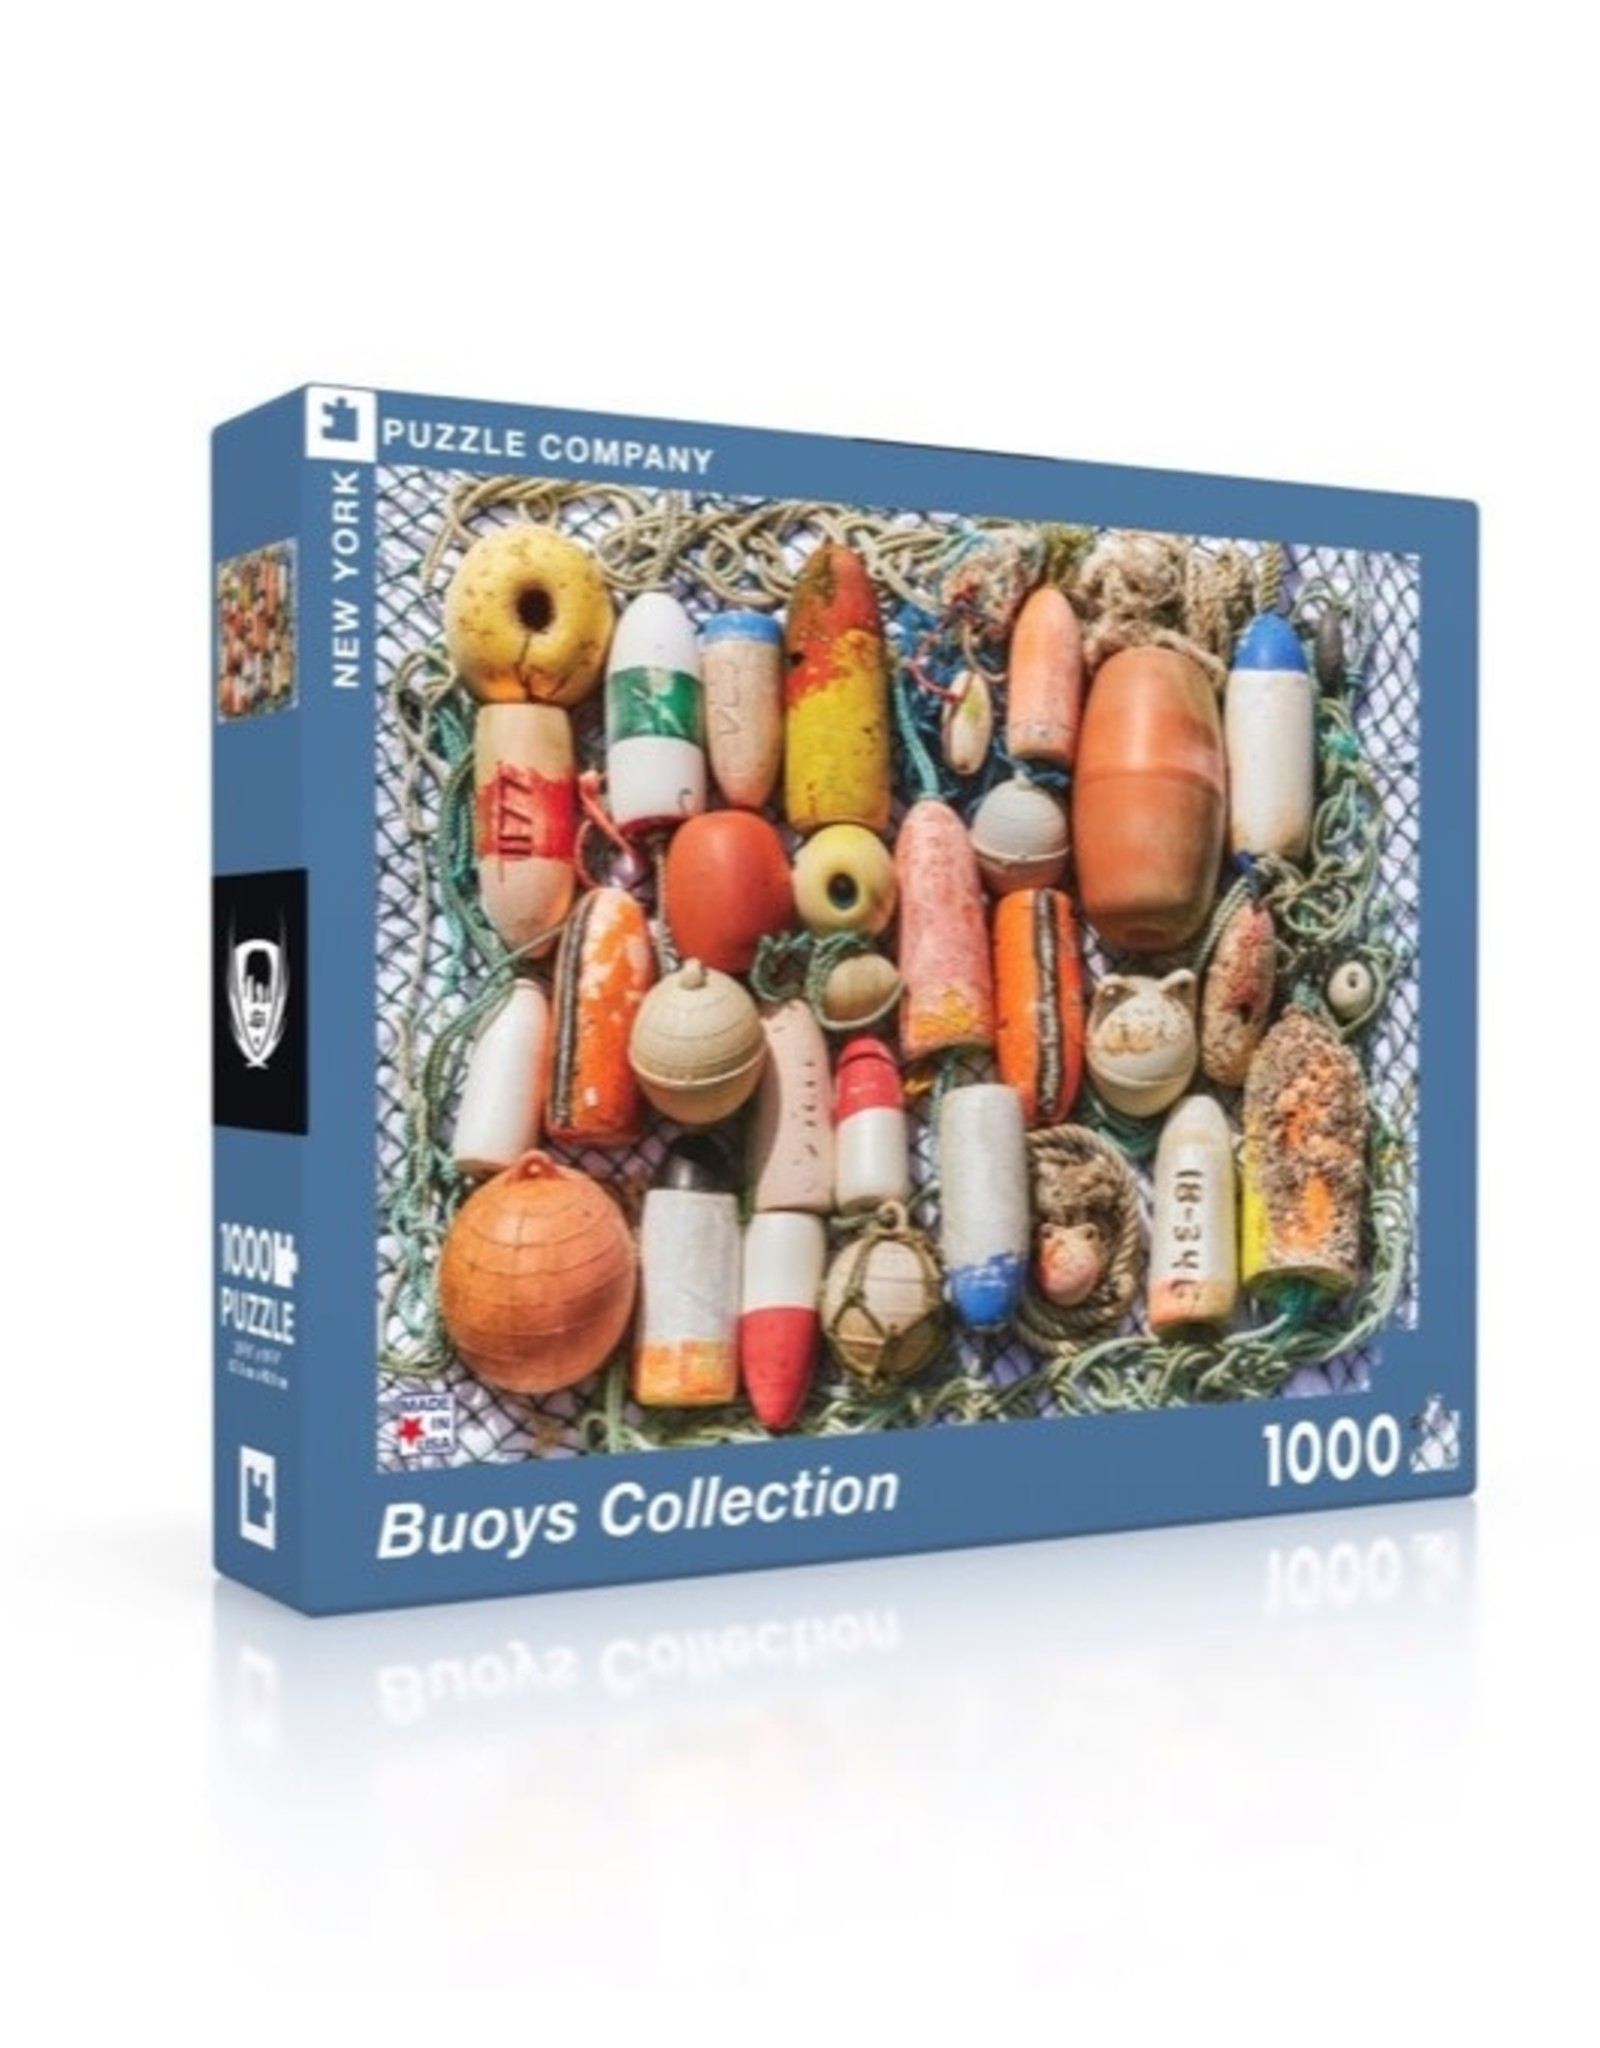 New York Puzzle Co Buoys Collection 1000pc